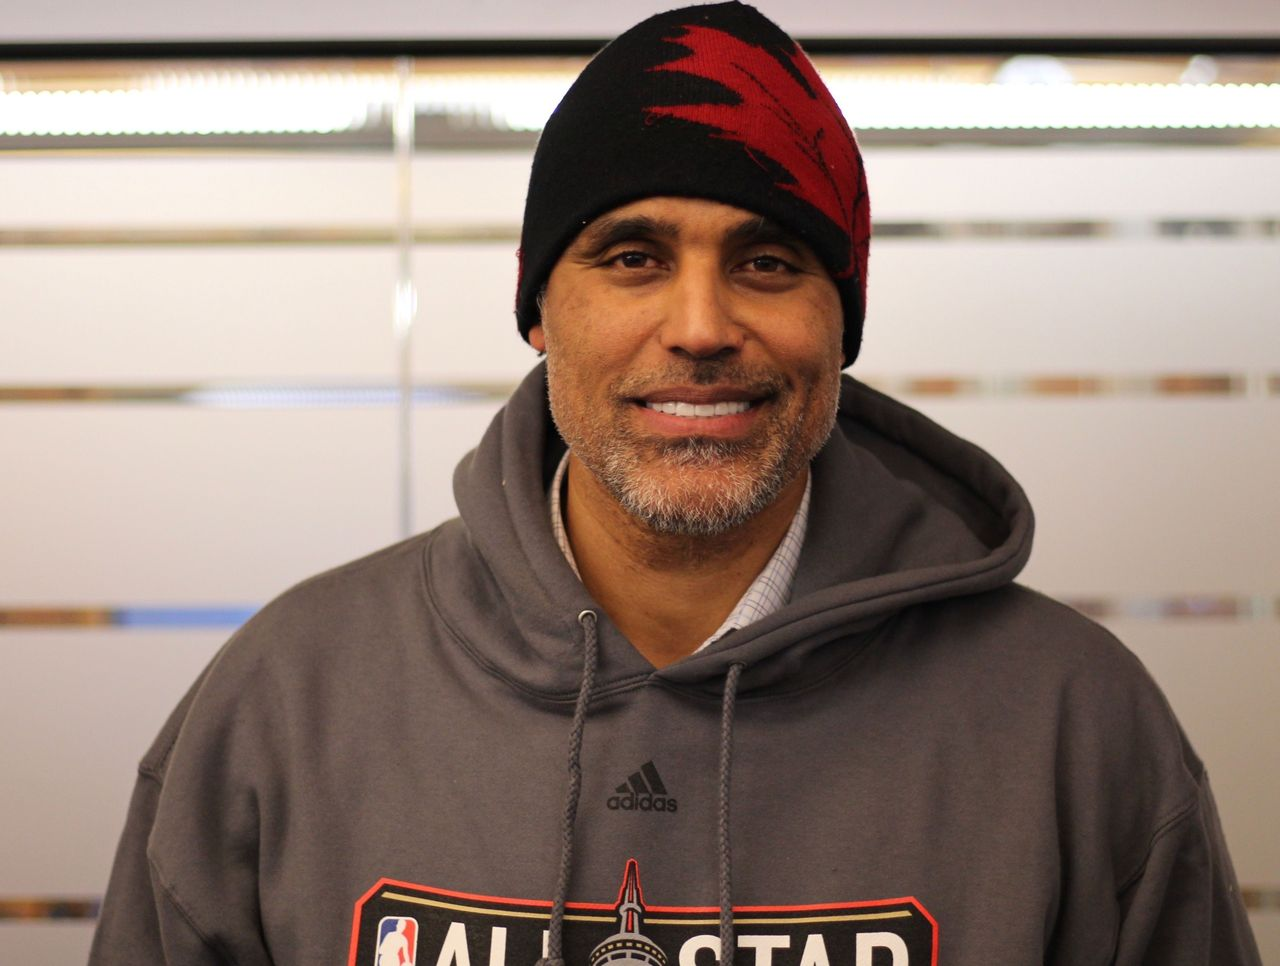 Rick Fox To Shaq Meet Me At LCS Arena So We Can See